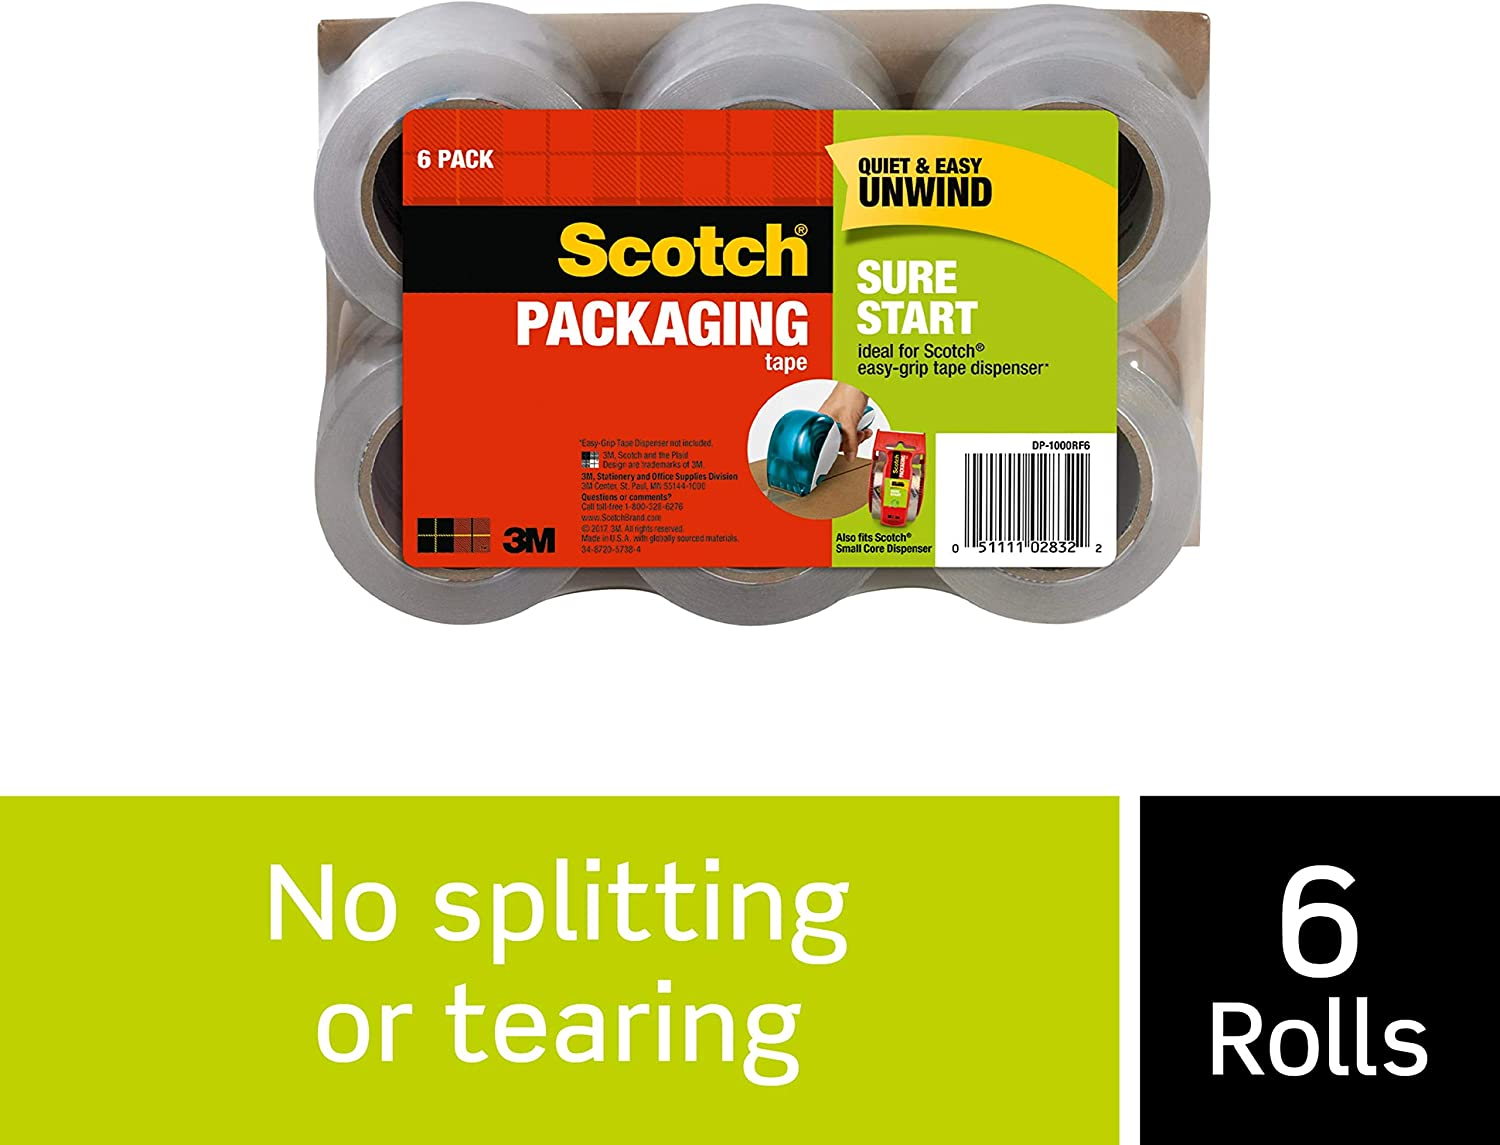 6-Rolls 1.88 Inches x 900 Inches DP-1000RF6 1.5 Core Scotch Sure Start Packaging Tape Refill Rolls